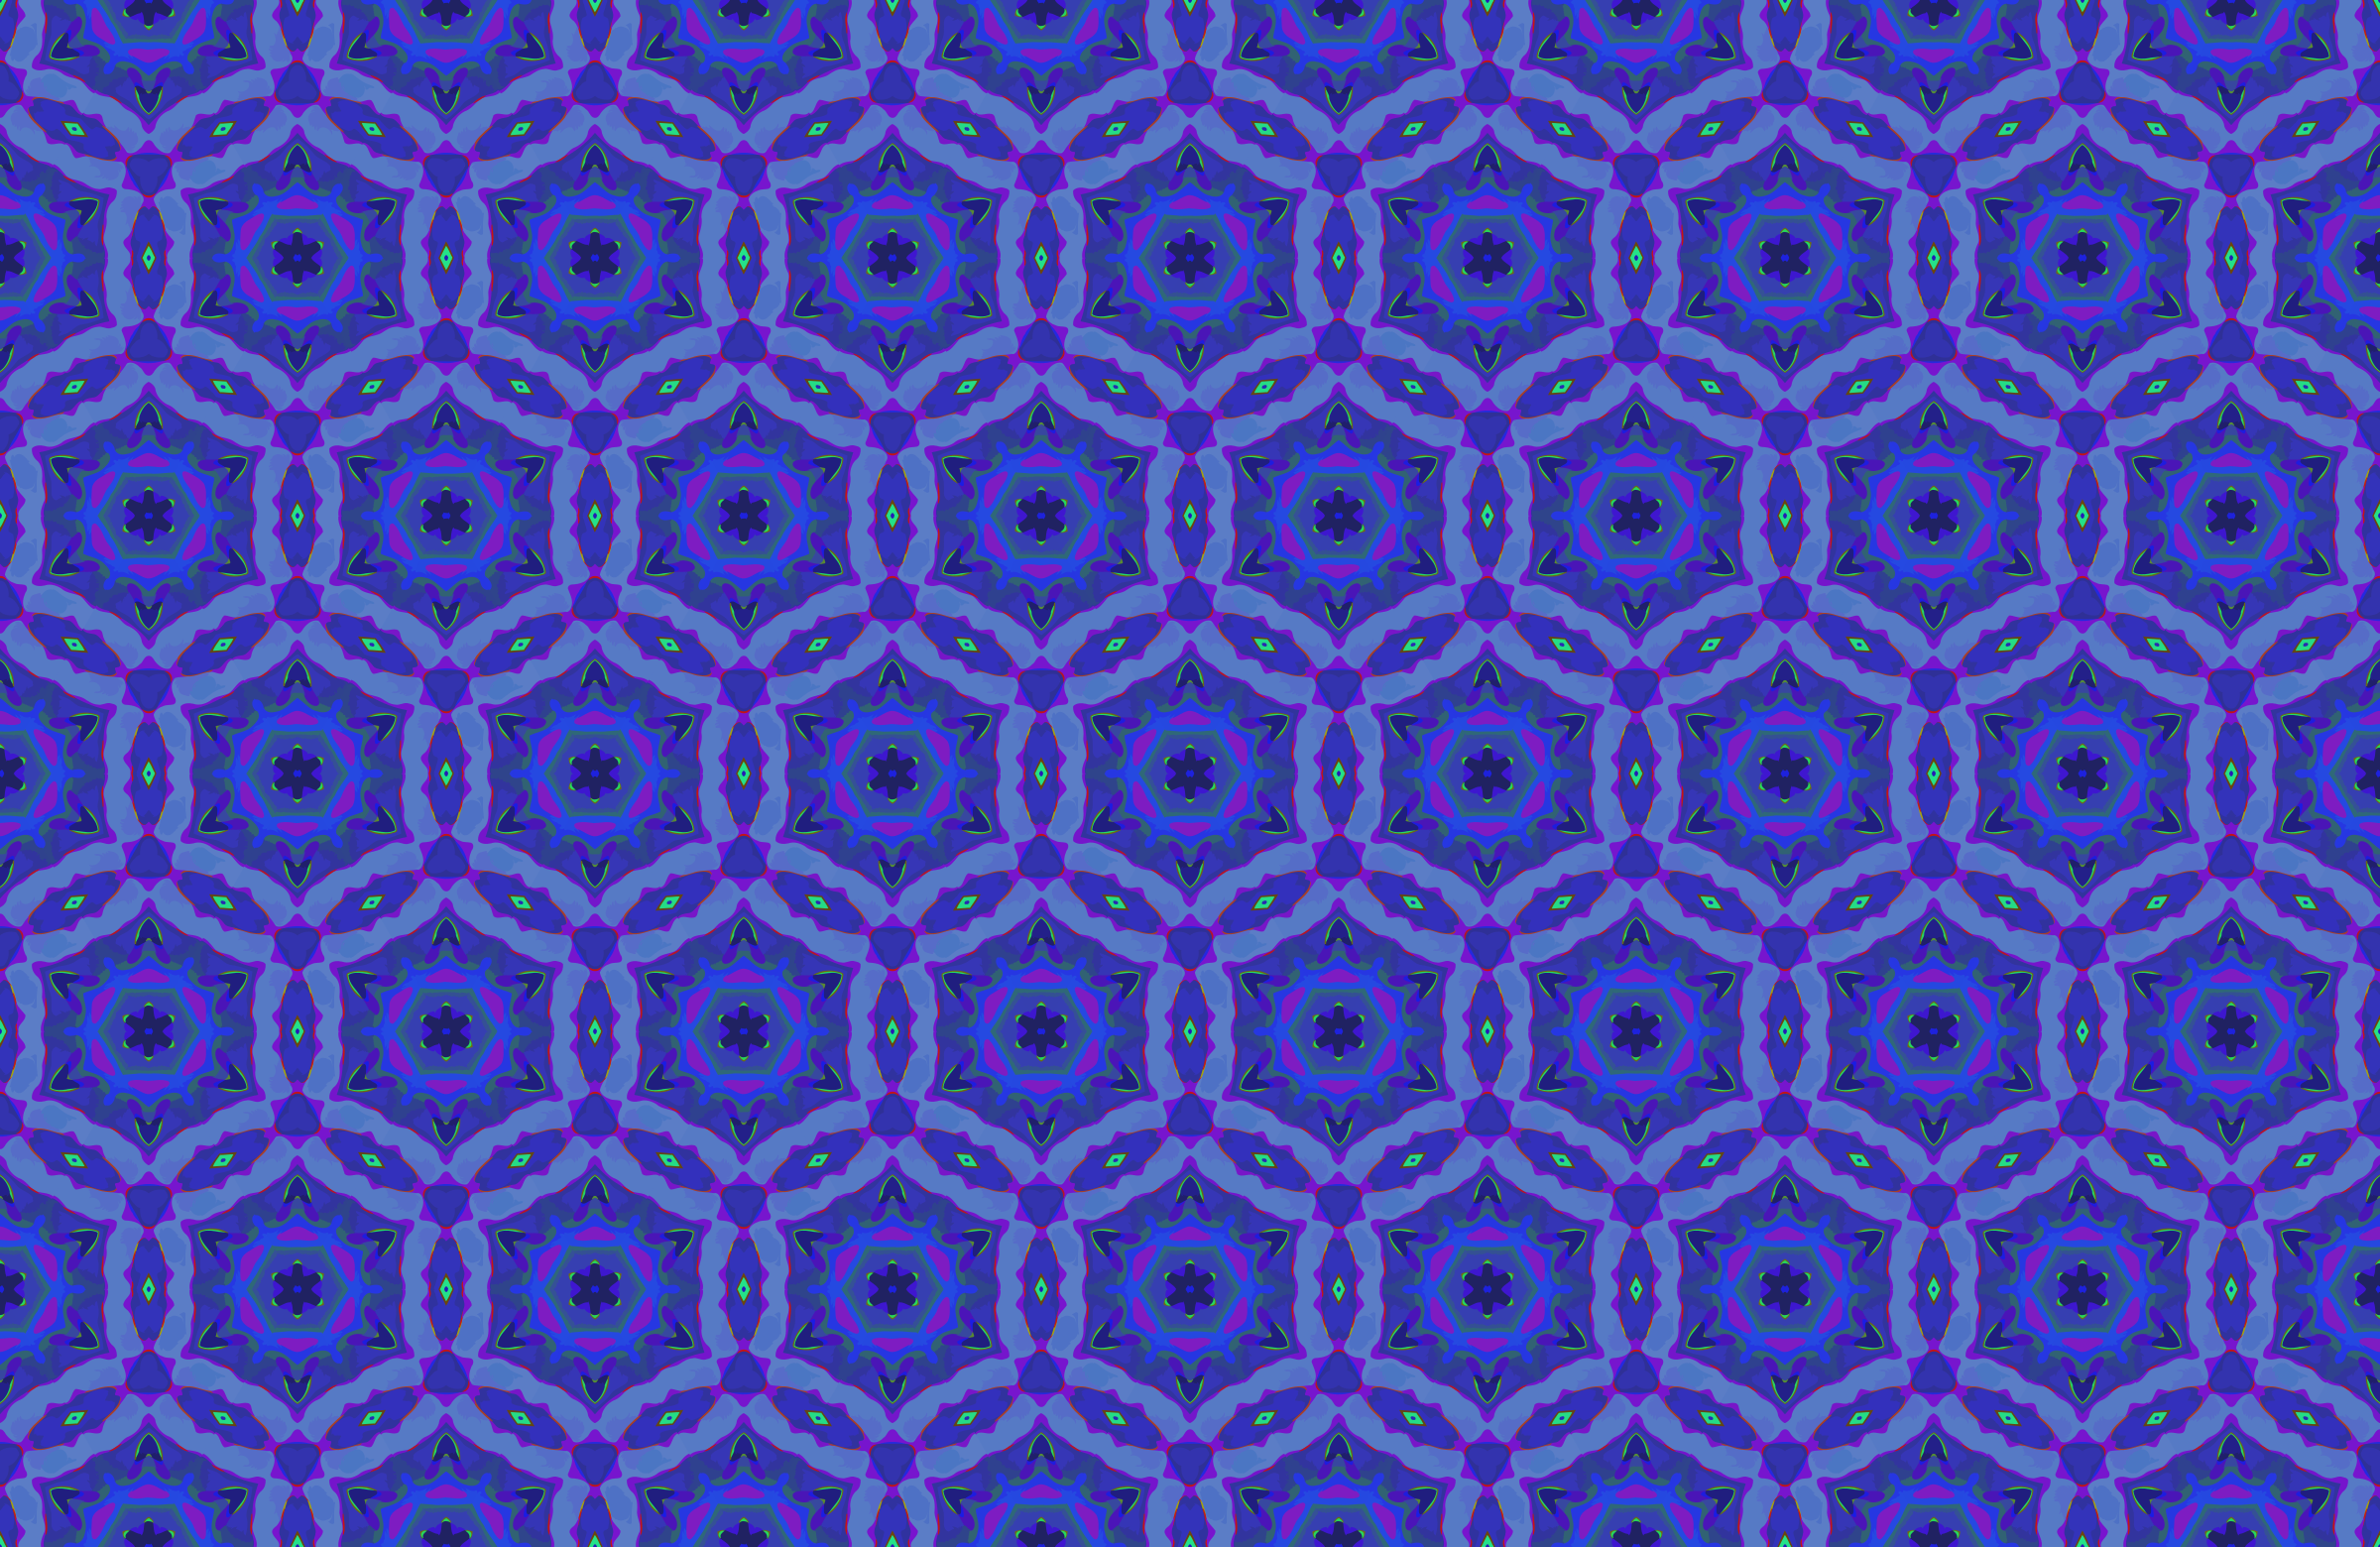 Background pattern 117 by Firkin